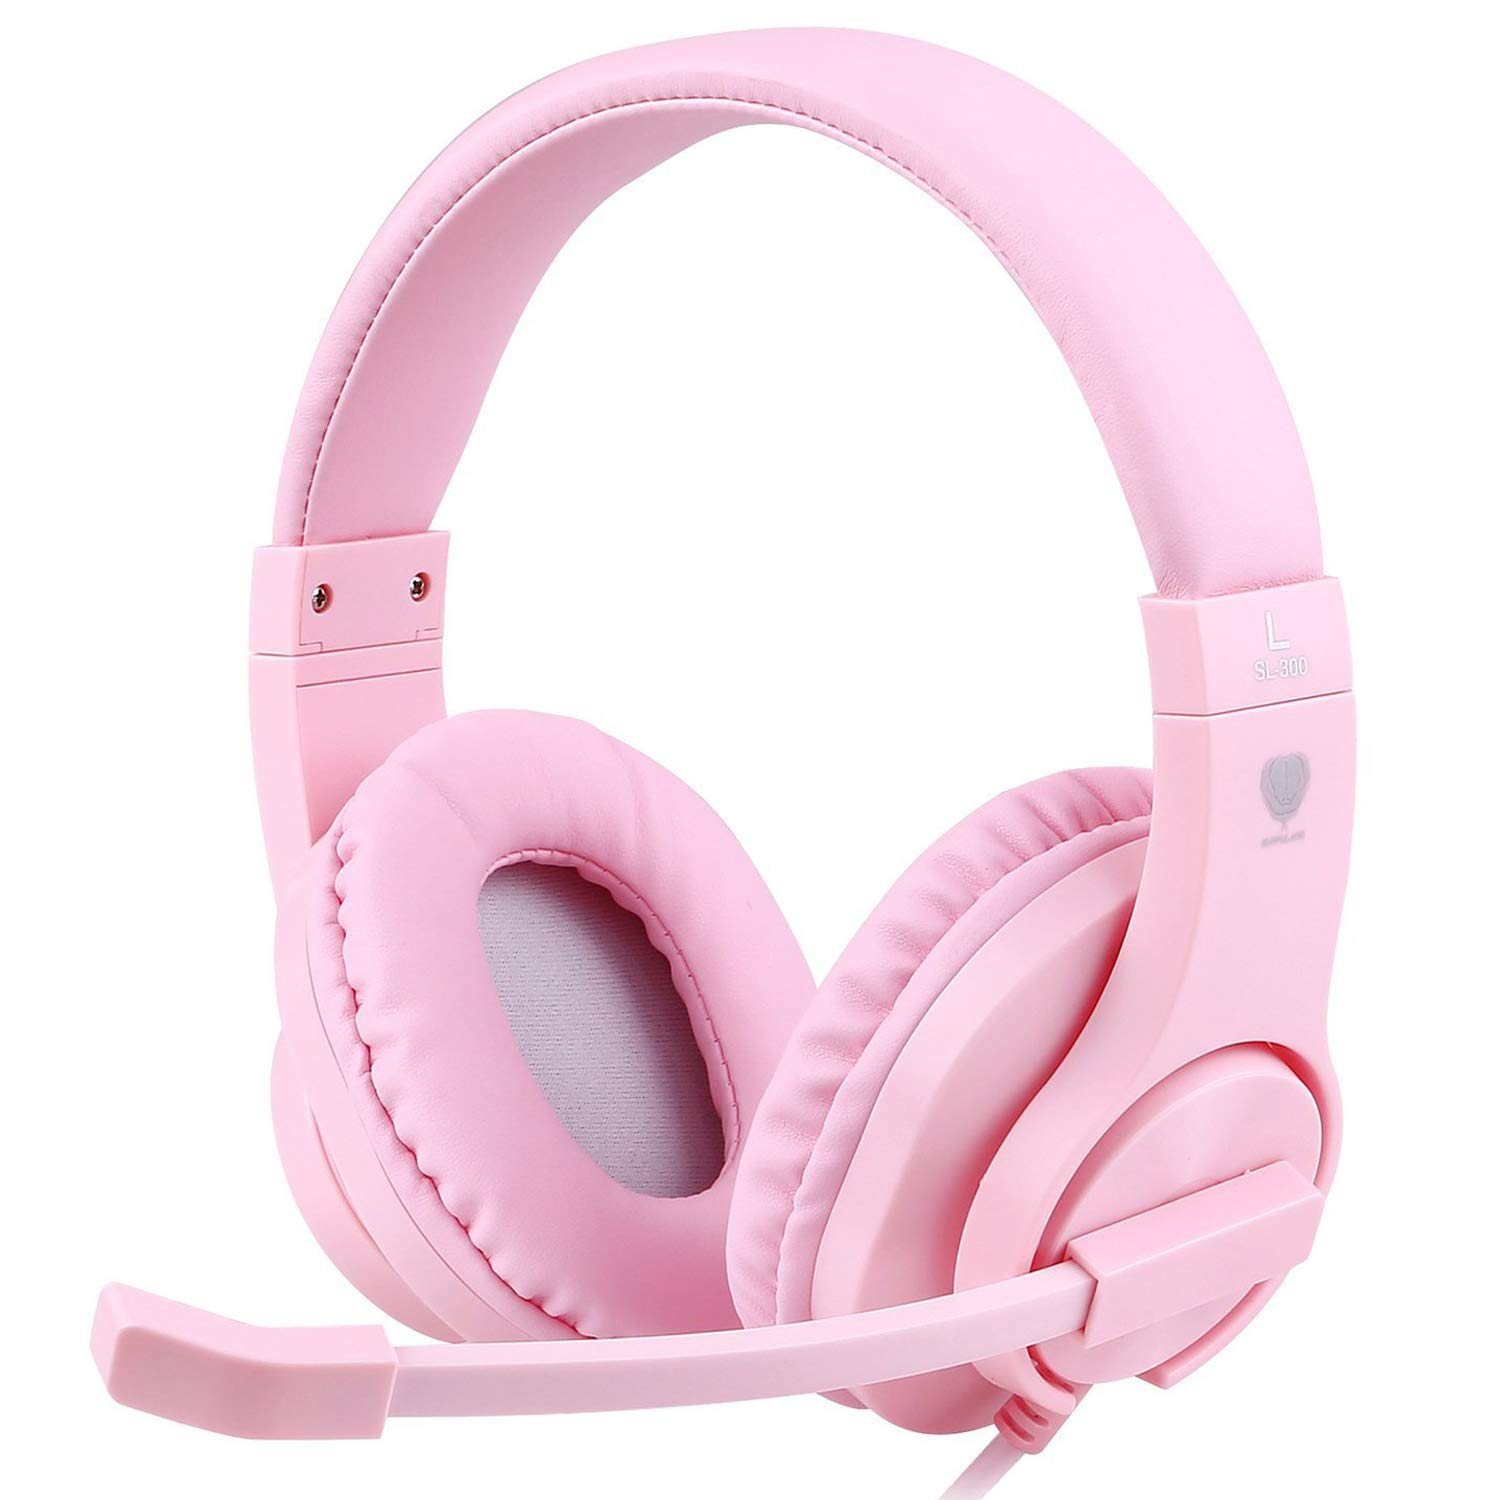 Meedasy Over-Ear Gaming Headphone for Xbox One, Nintendo Switch, Bass Surrounding Stereo, PS4 Gaming Headset with Microphone and Volume Control for Laptop, PC, Wired Noise Isolation Pink